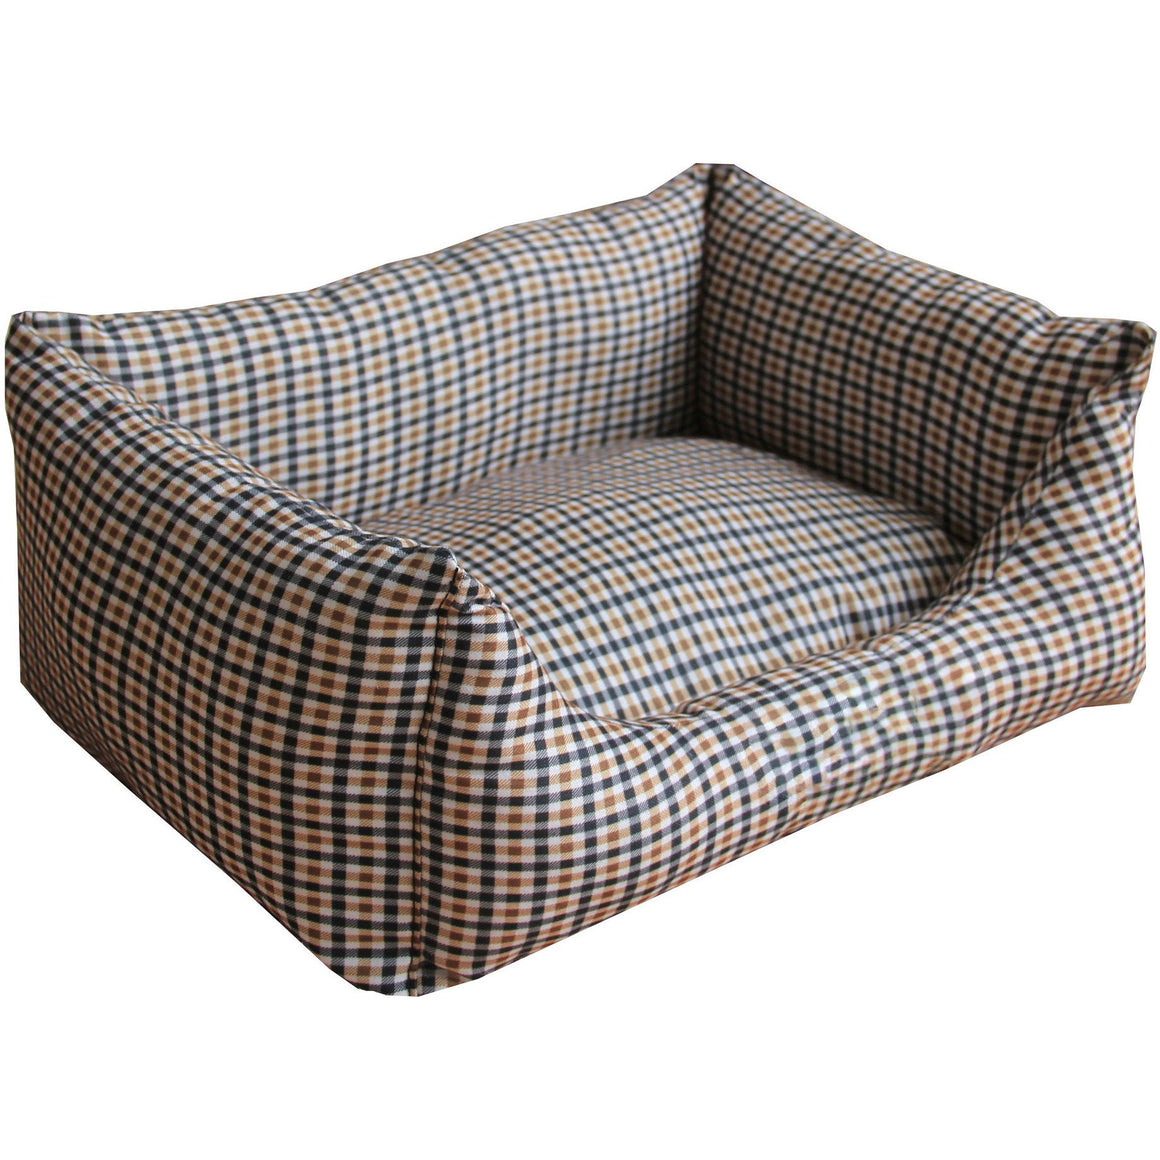 Anti-Bacterial/Water Resistant Rectangular Dog Bed - X-Small - Brown/Blue Plaid